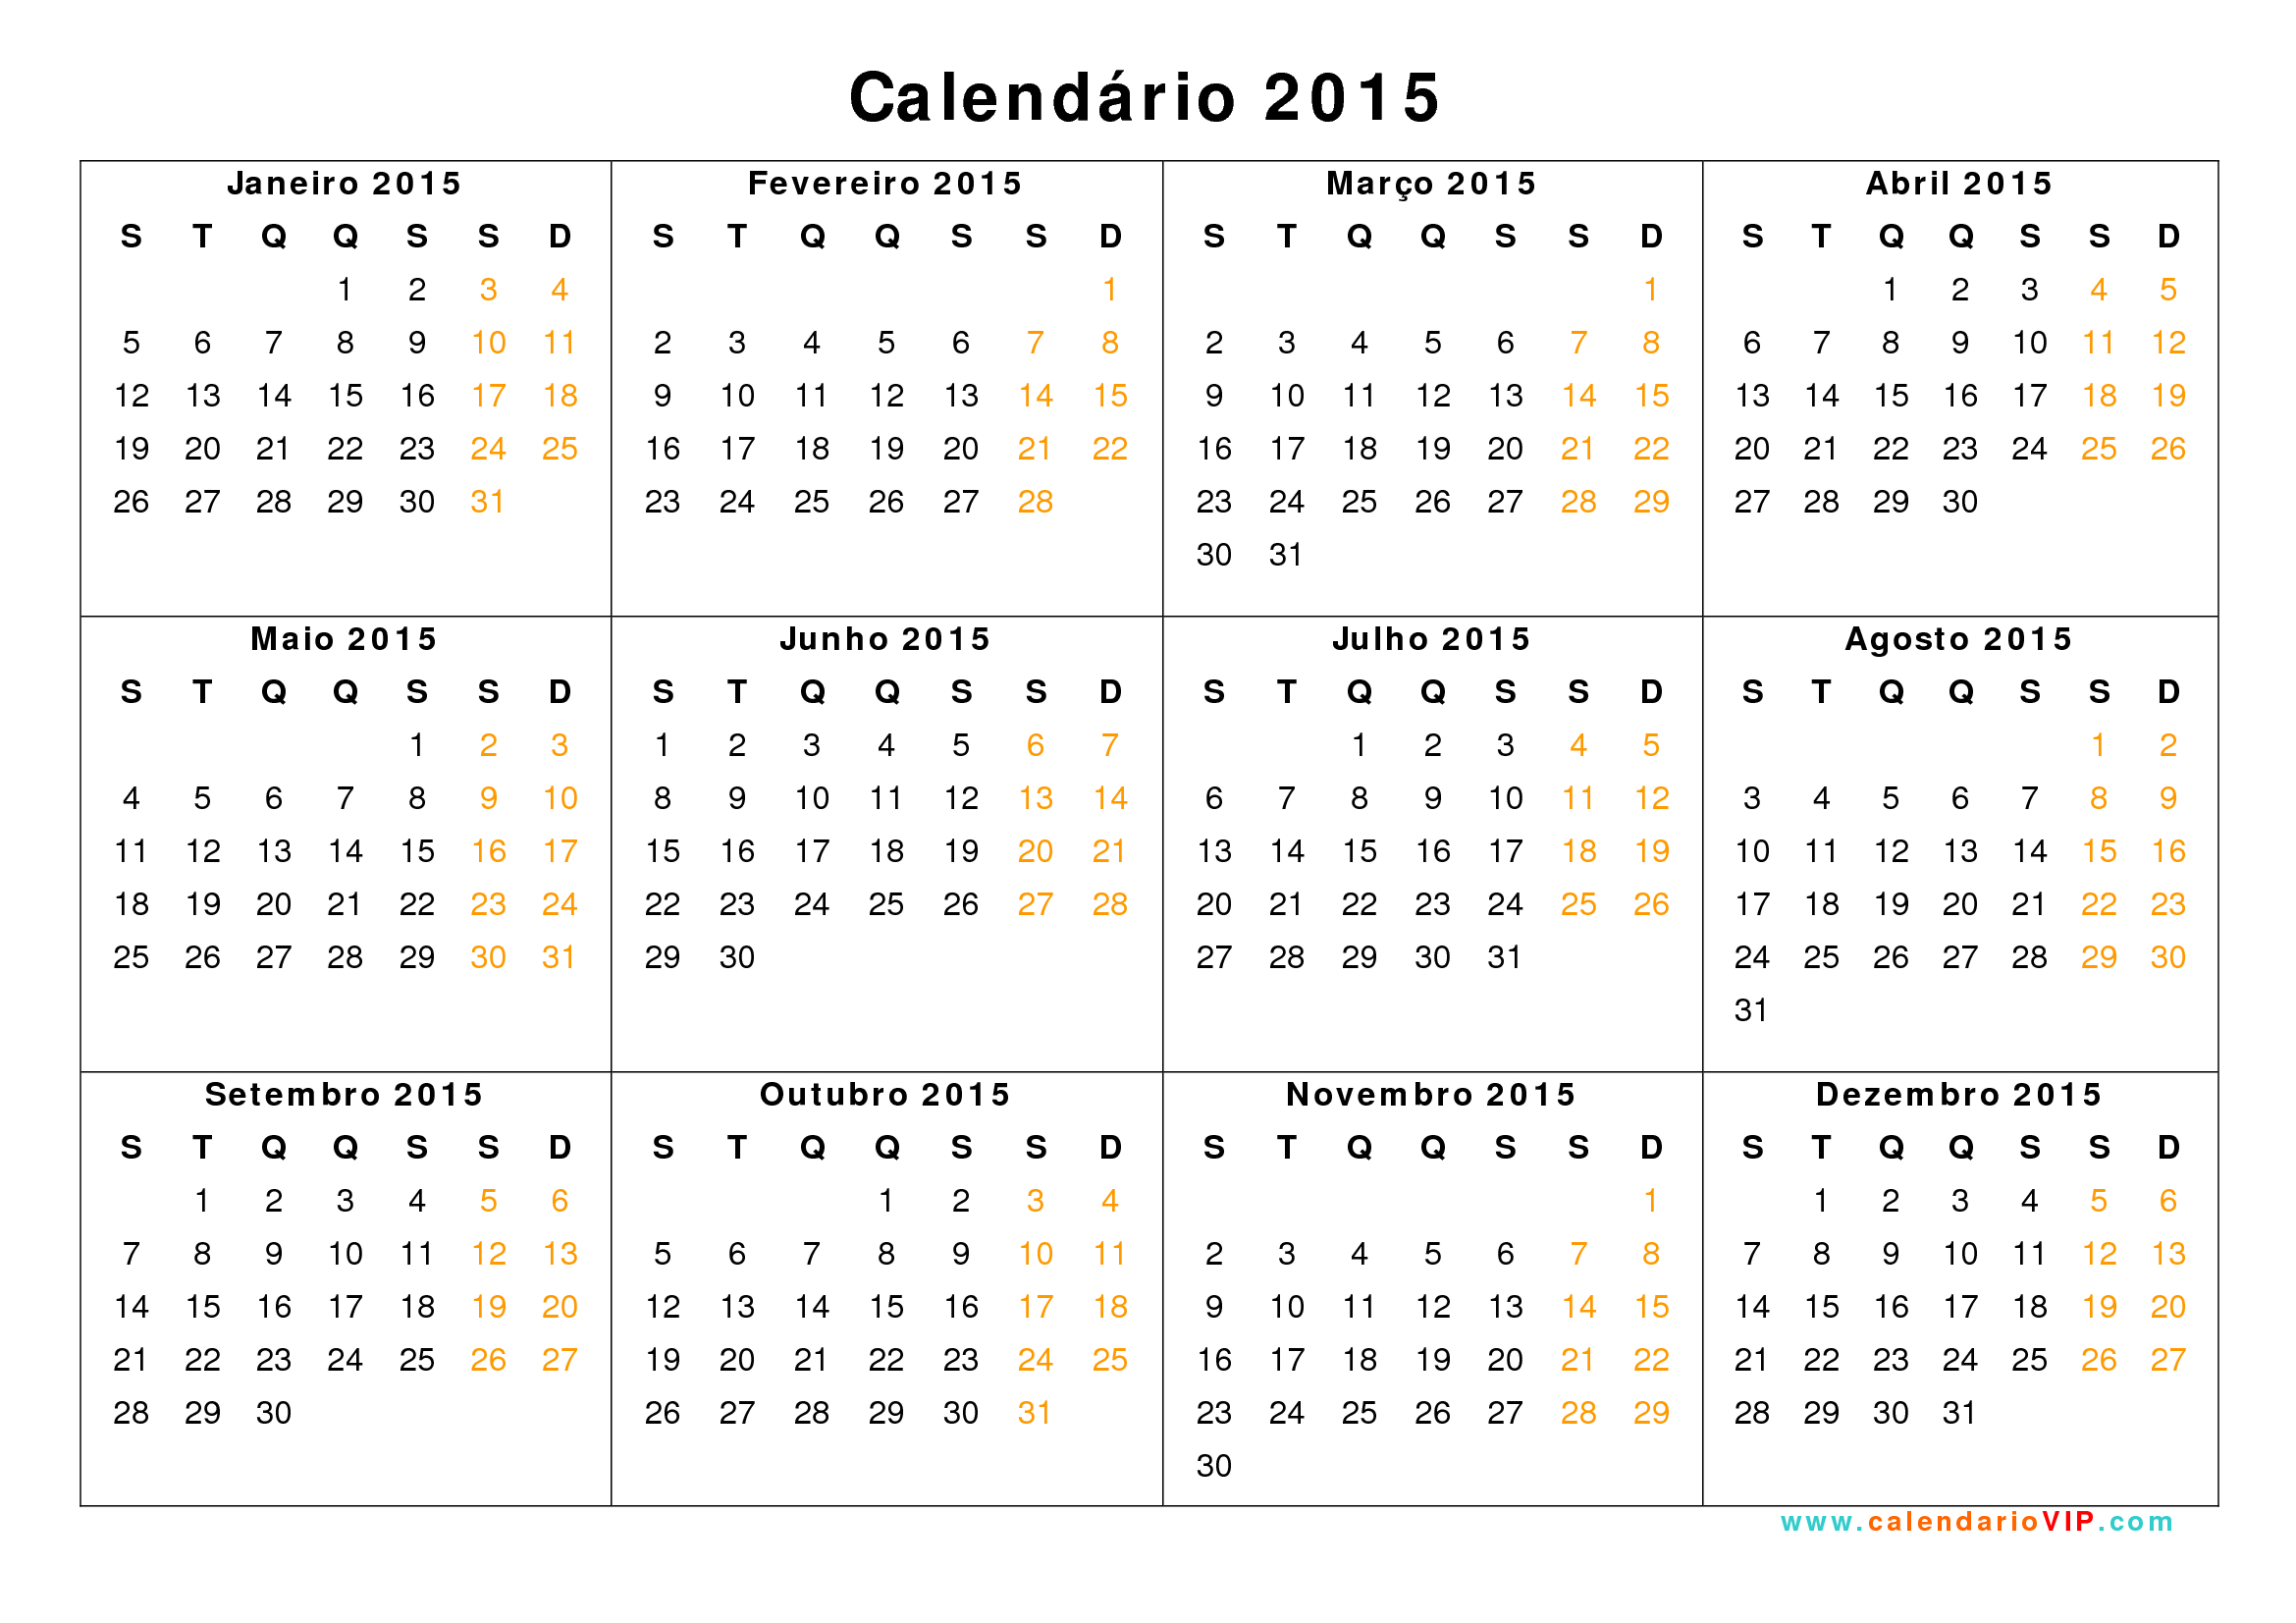 Calendario 2015 (2) | 2018 Calendar Printable For Free inside Calendario 2015 Para Imprimir